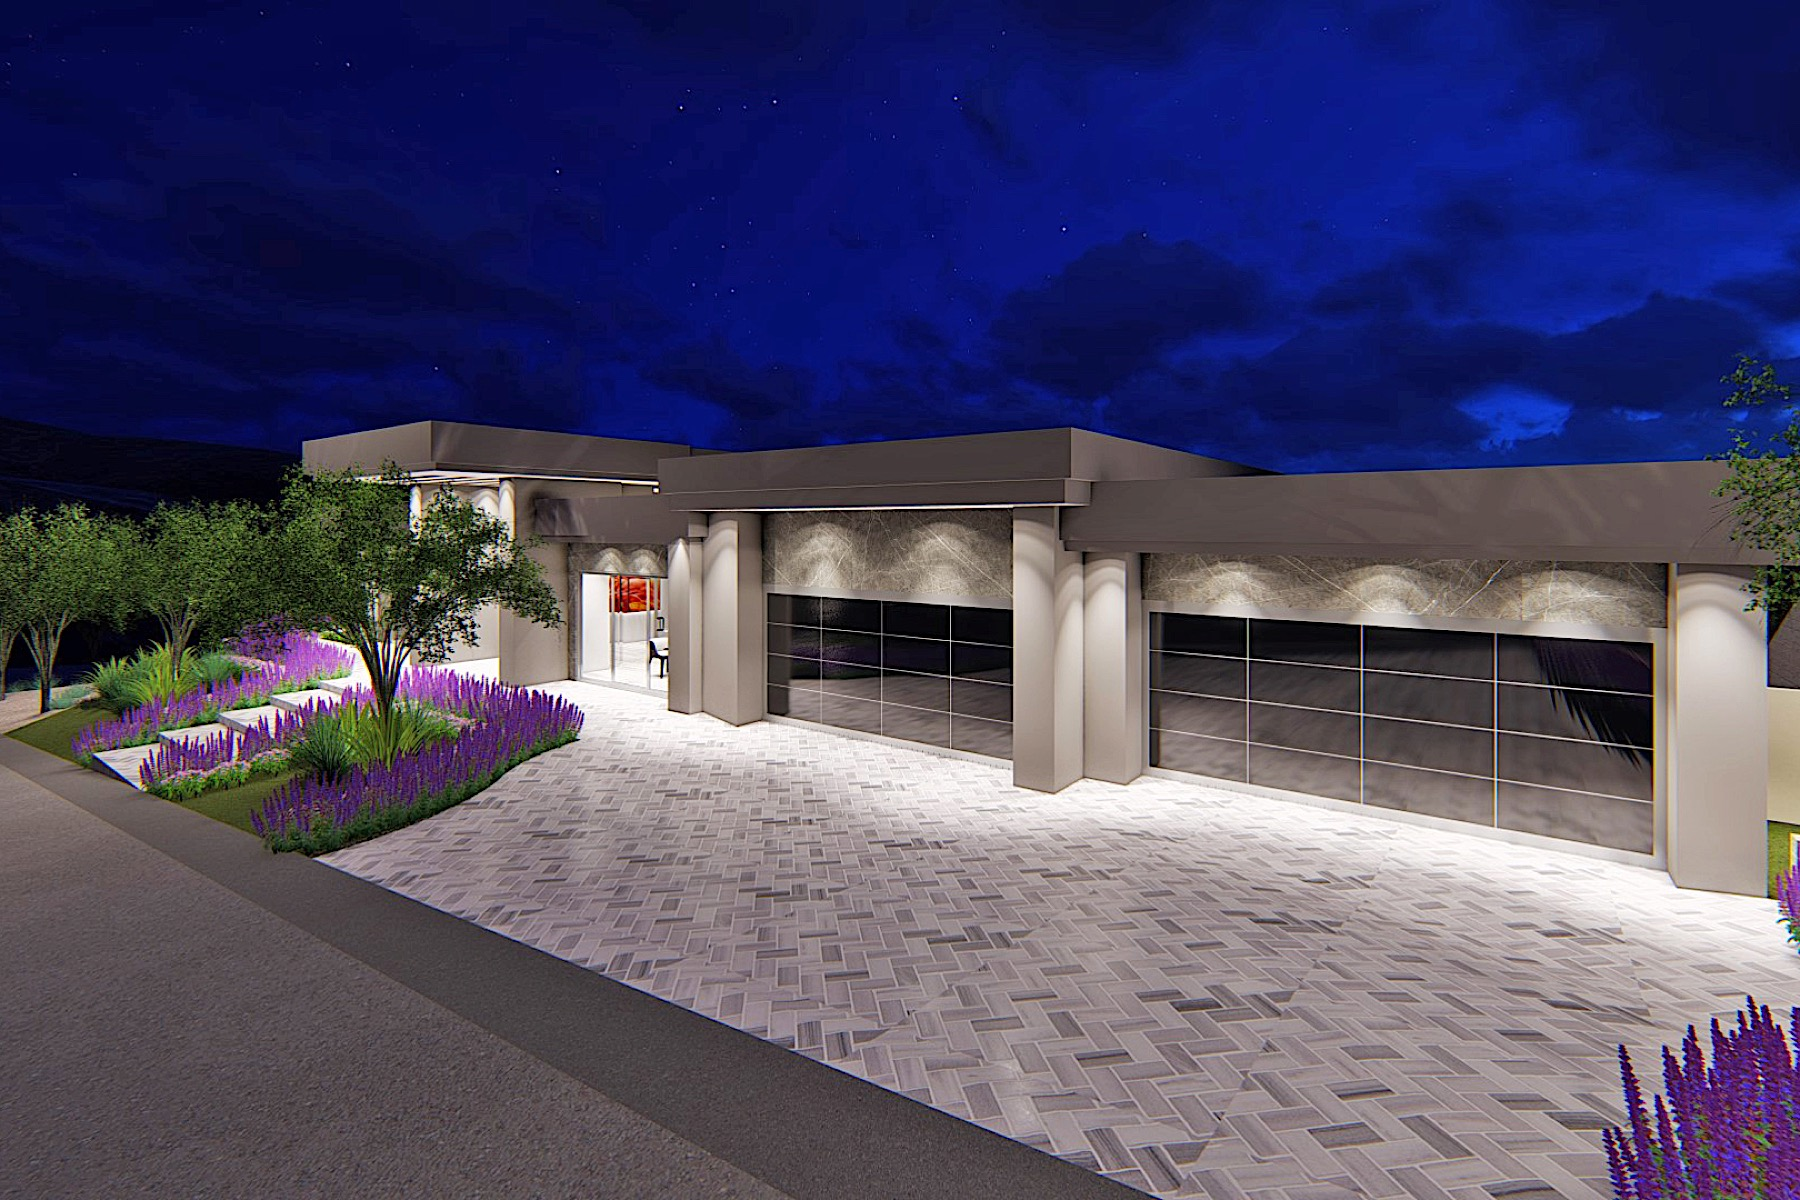 Additional photo for property listing at Galaxy   New Modern Single Story with Strip Views 673 Falcon Cliff Ct Henderson, Nevada 89012 United States